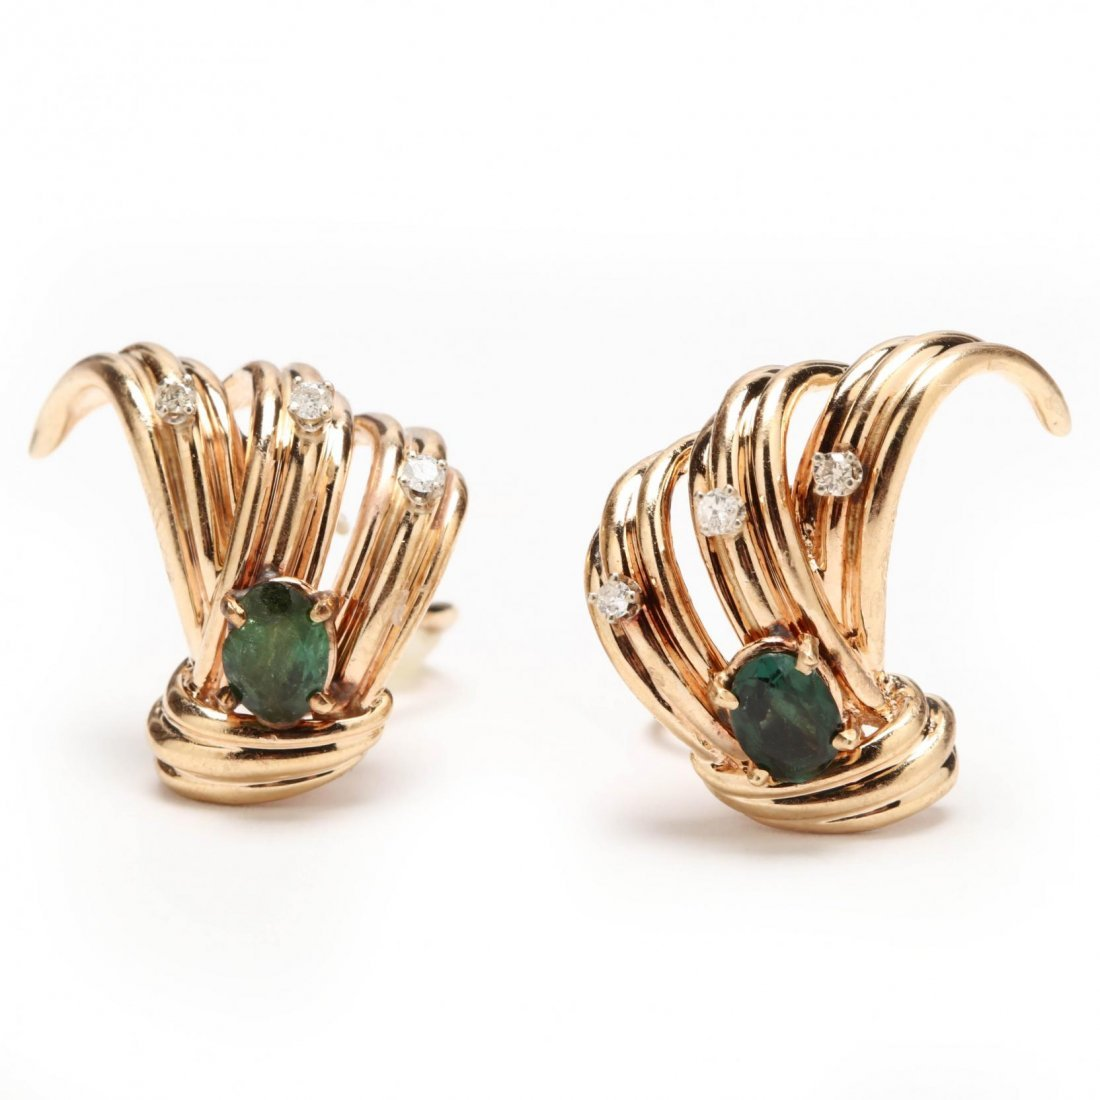 14KT Gold, Green Tourmaline, and Diamond Suite - 2